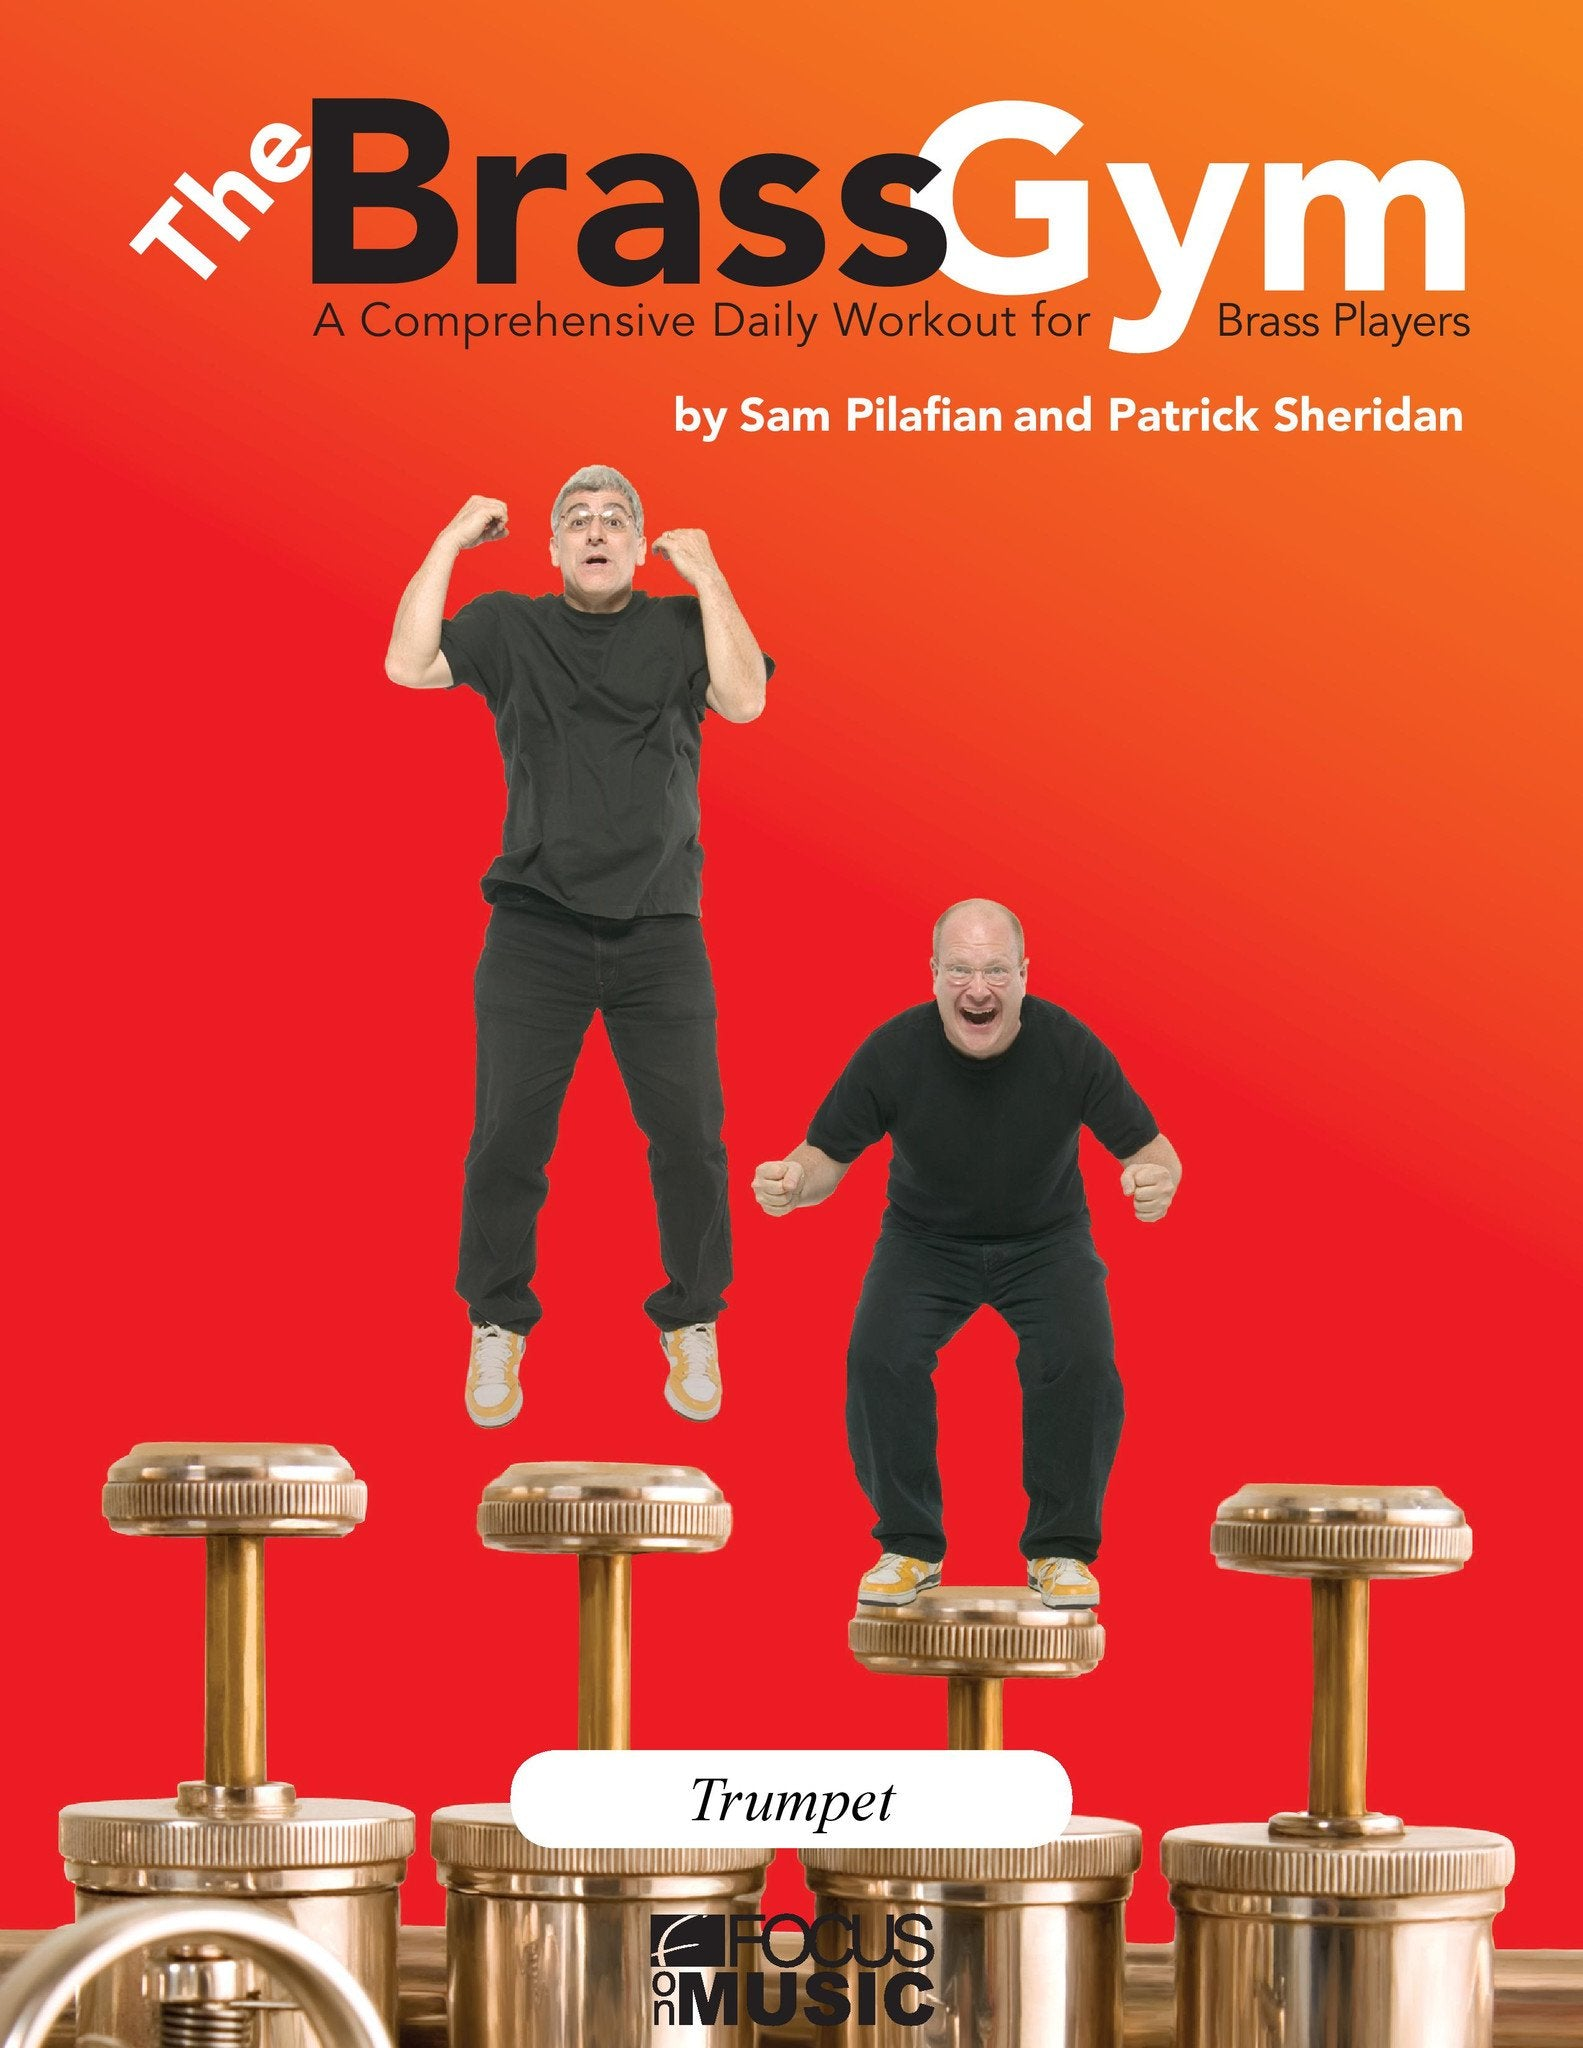 The Brass Gym